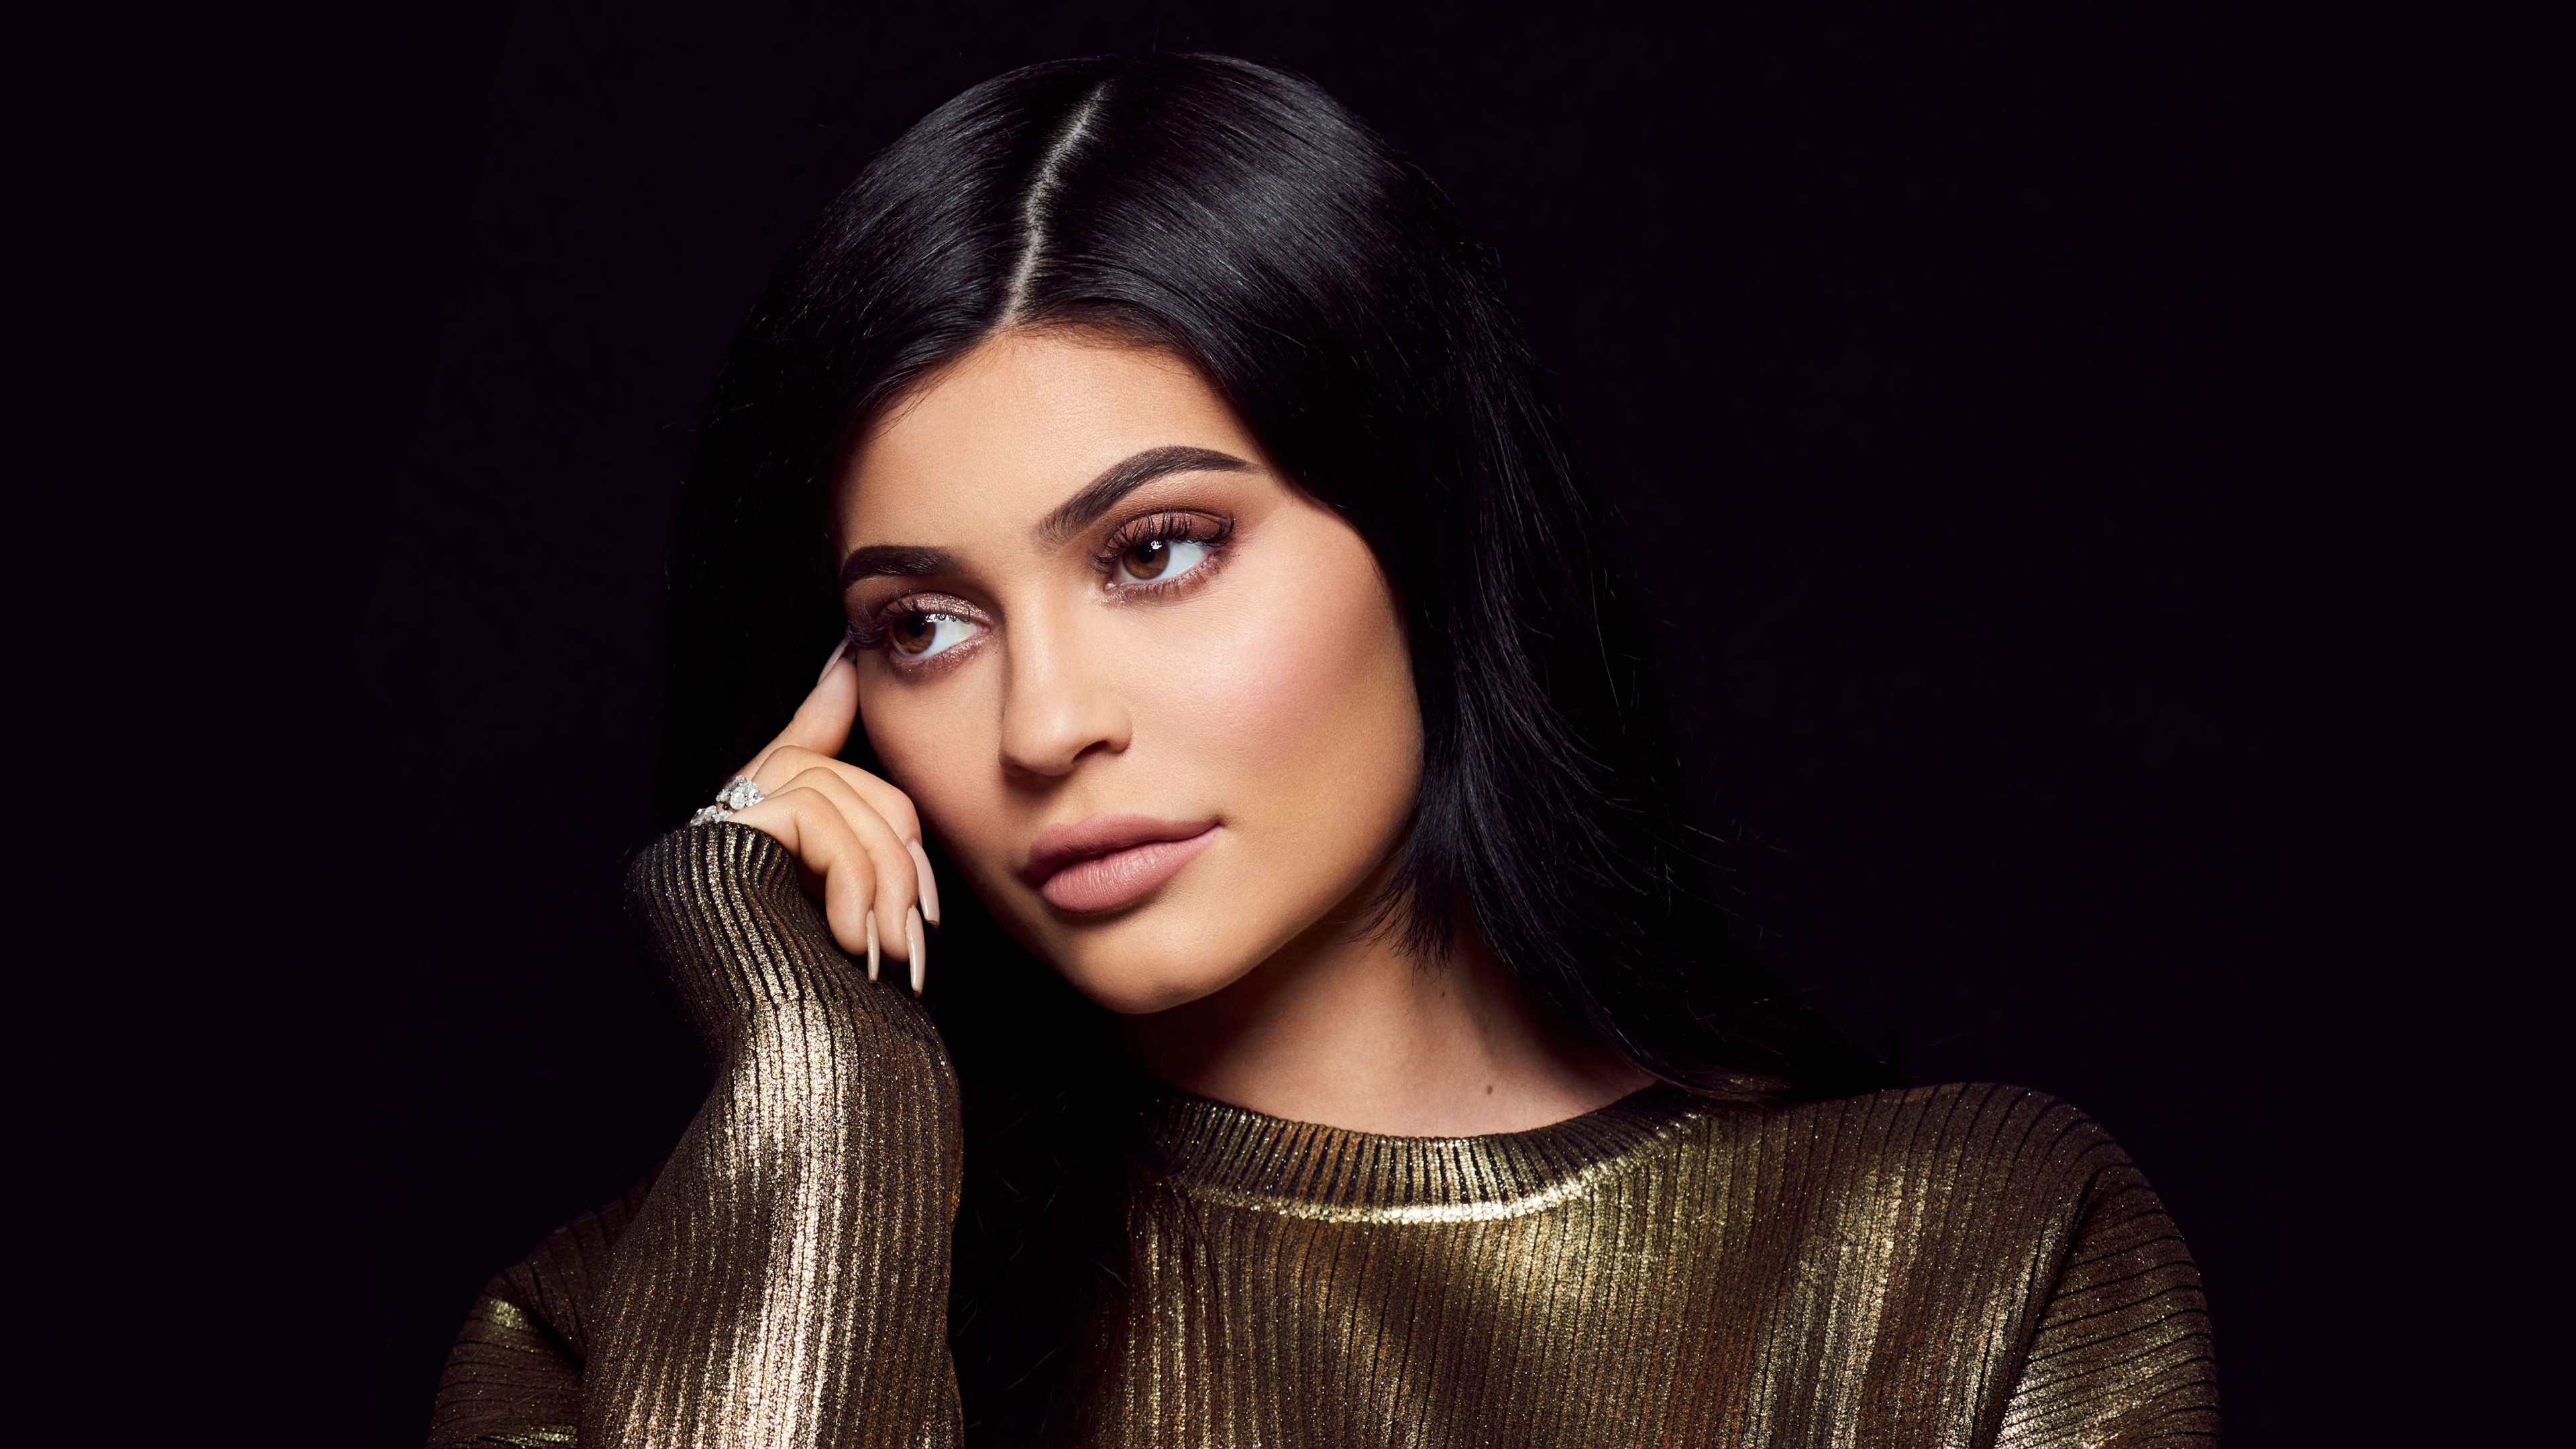 Kylie Jenner photo 4k Wallpaper